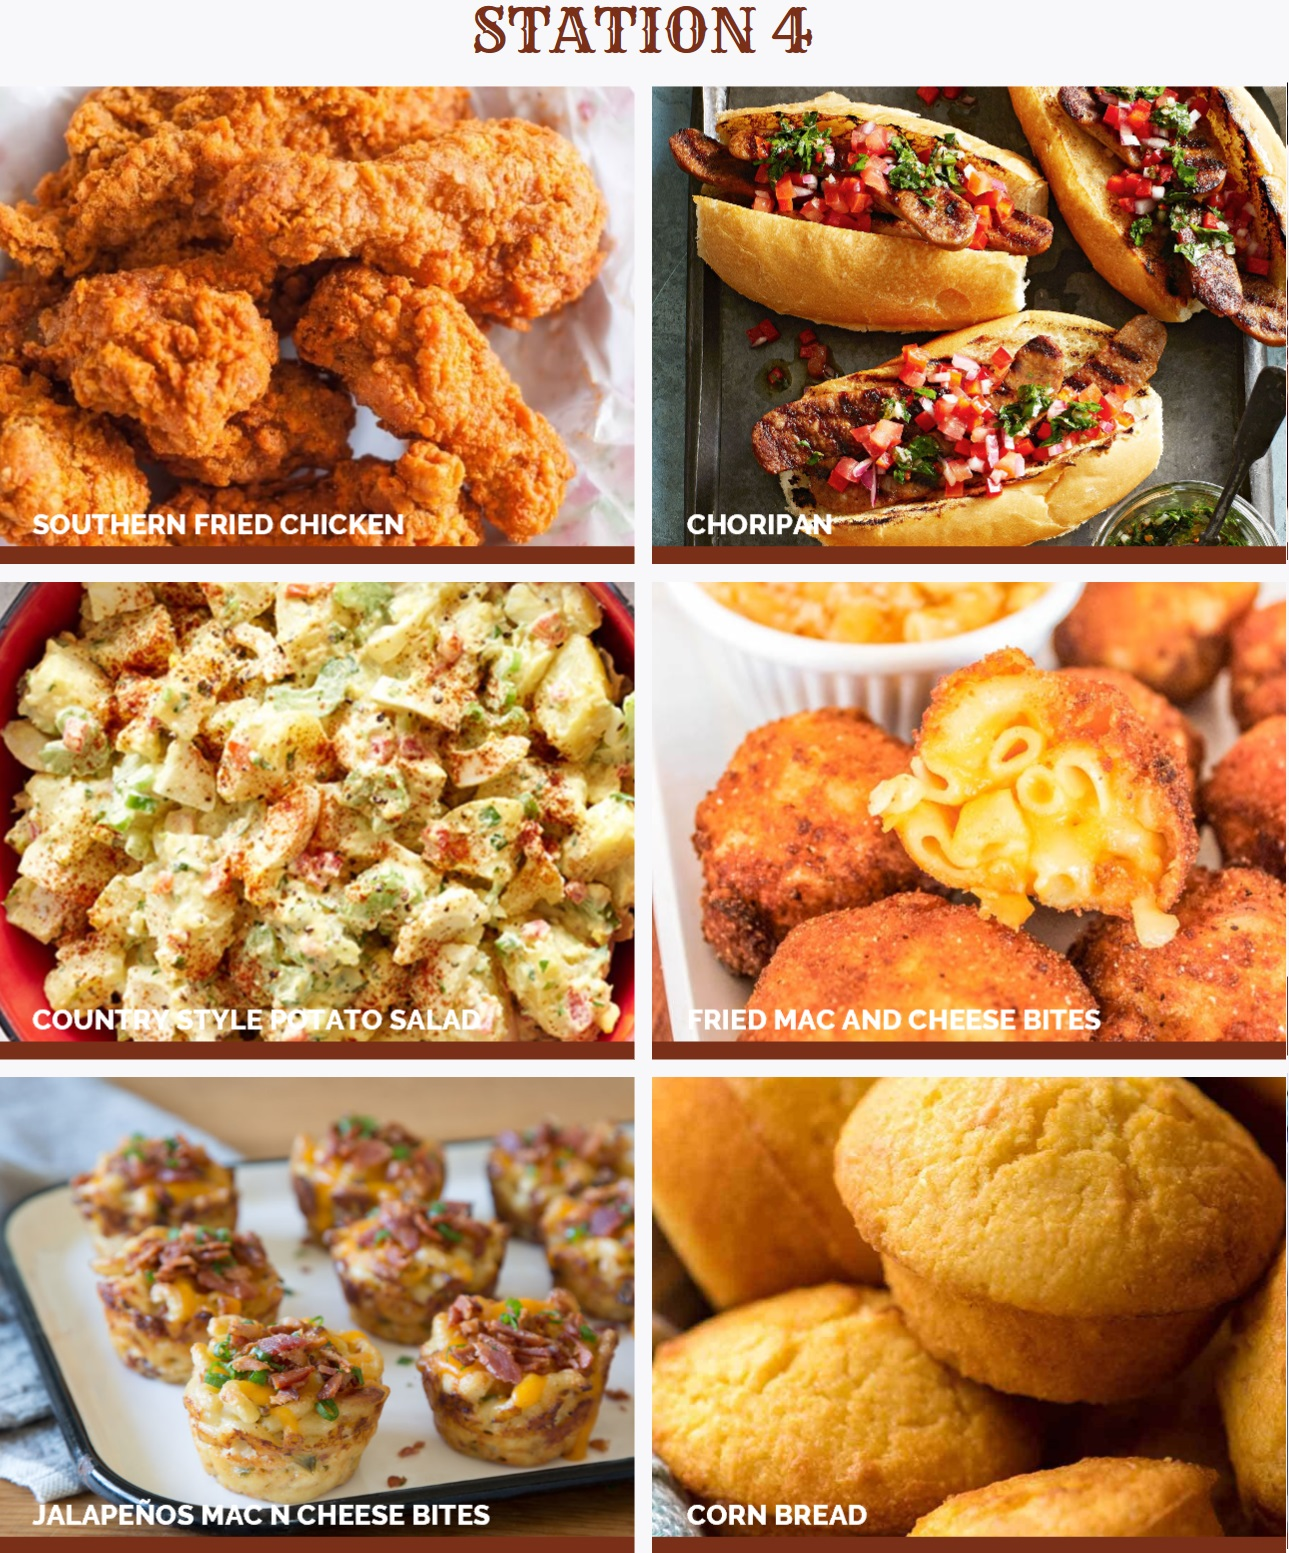 Southern Fried Chicken, Choripan, Country Style Potato Salad, Fried Mac & Cheese Bites, Jalapeño Mac & Cheese, Bites, Corn Bread